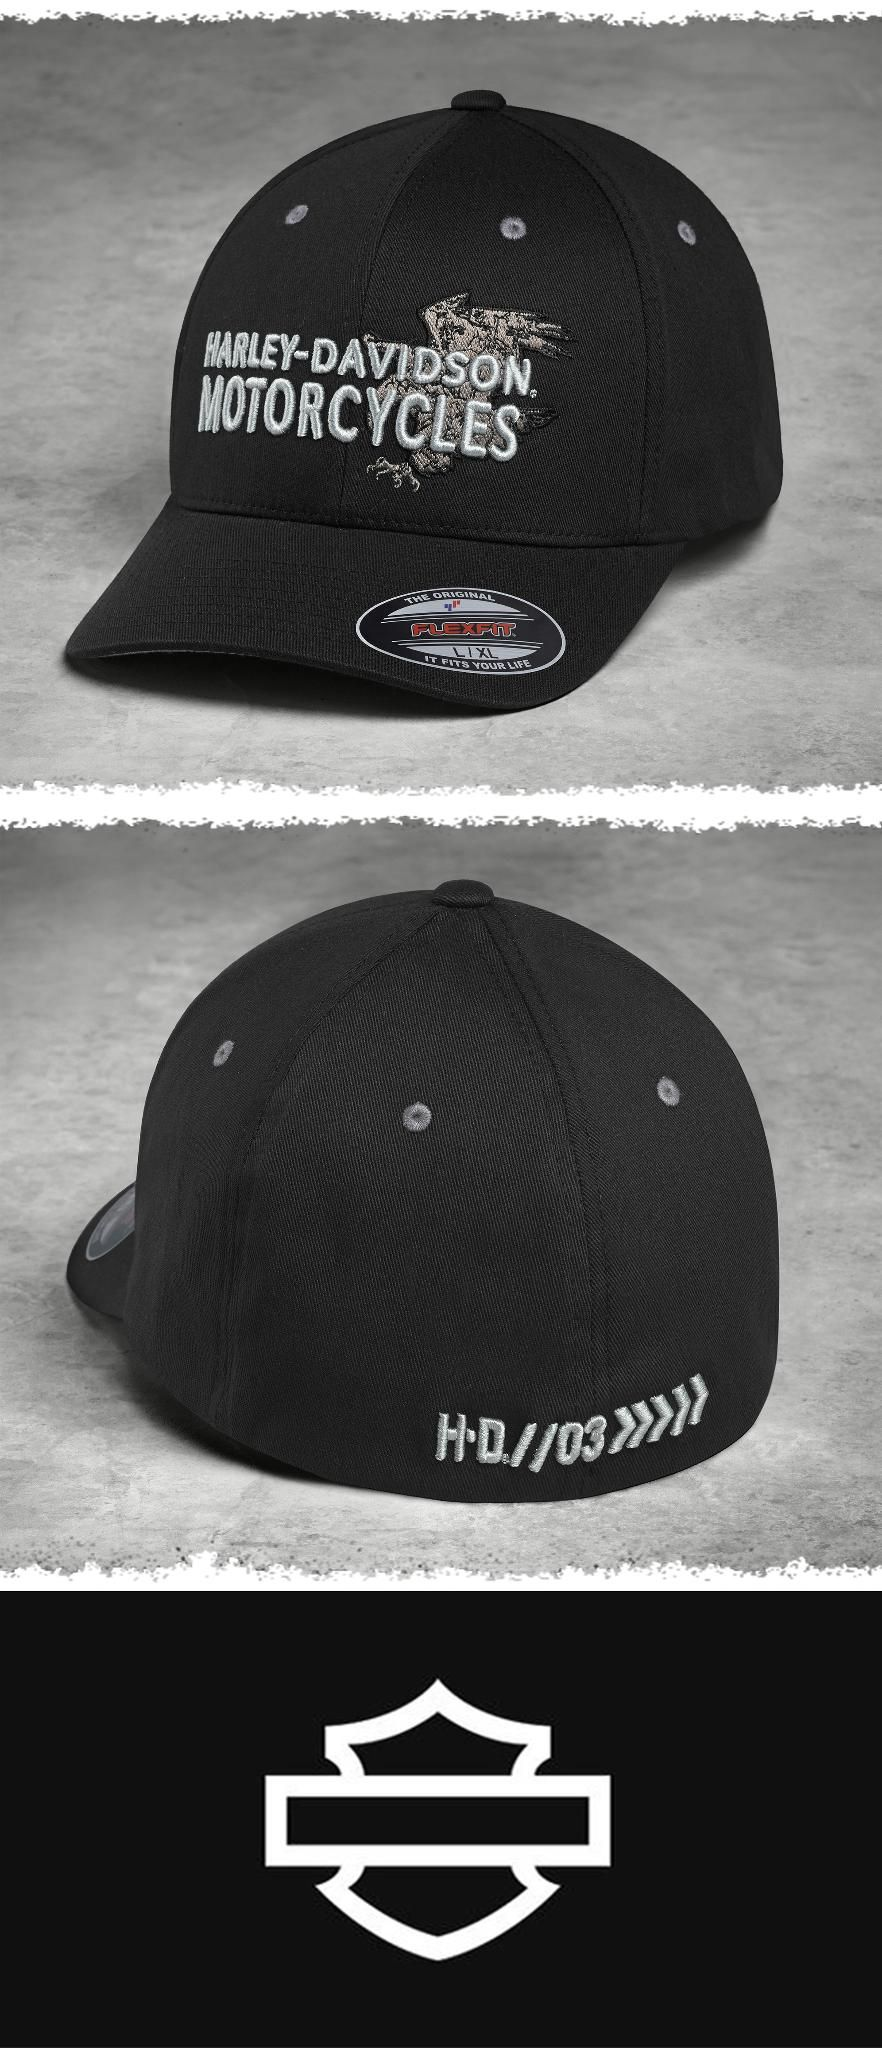 outlet store 9e43f 2ce65 The Flexfit® interior comfort stretch band is a secret weapon against  squeezing, pinching hats.   Harley-Davidson Men s Embroidered Eagle Stretch  Cap